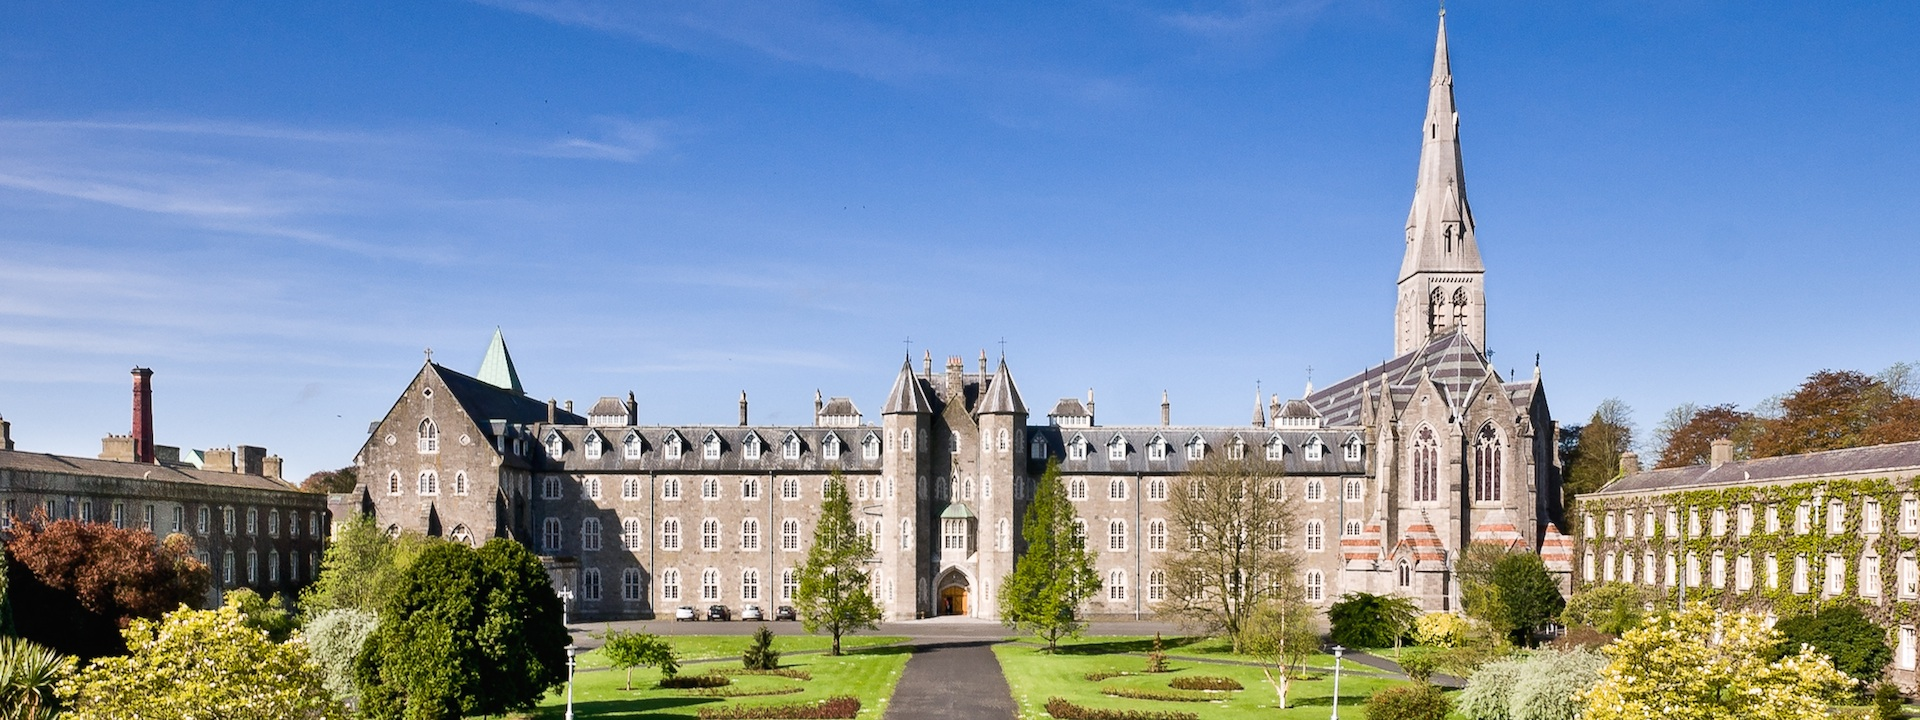 Maynooth University hosted the Csound 30 conference